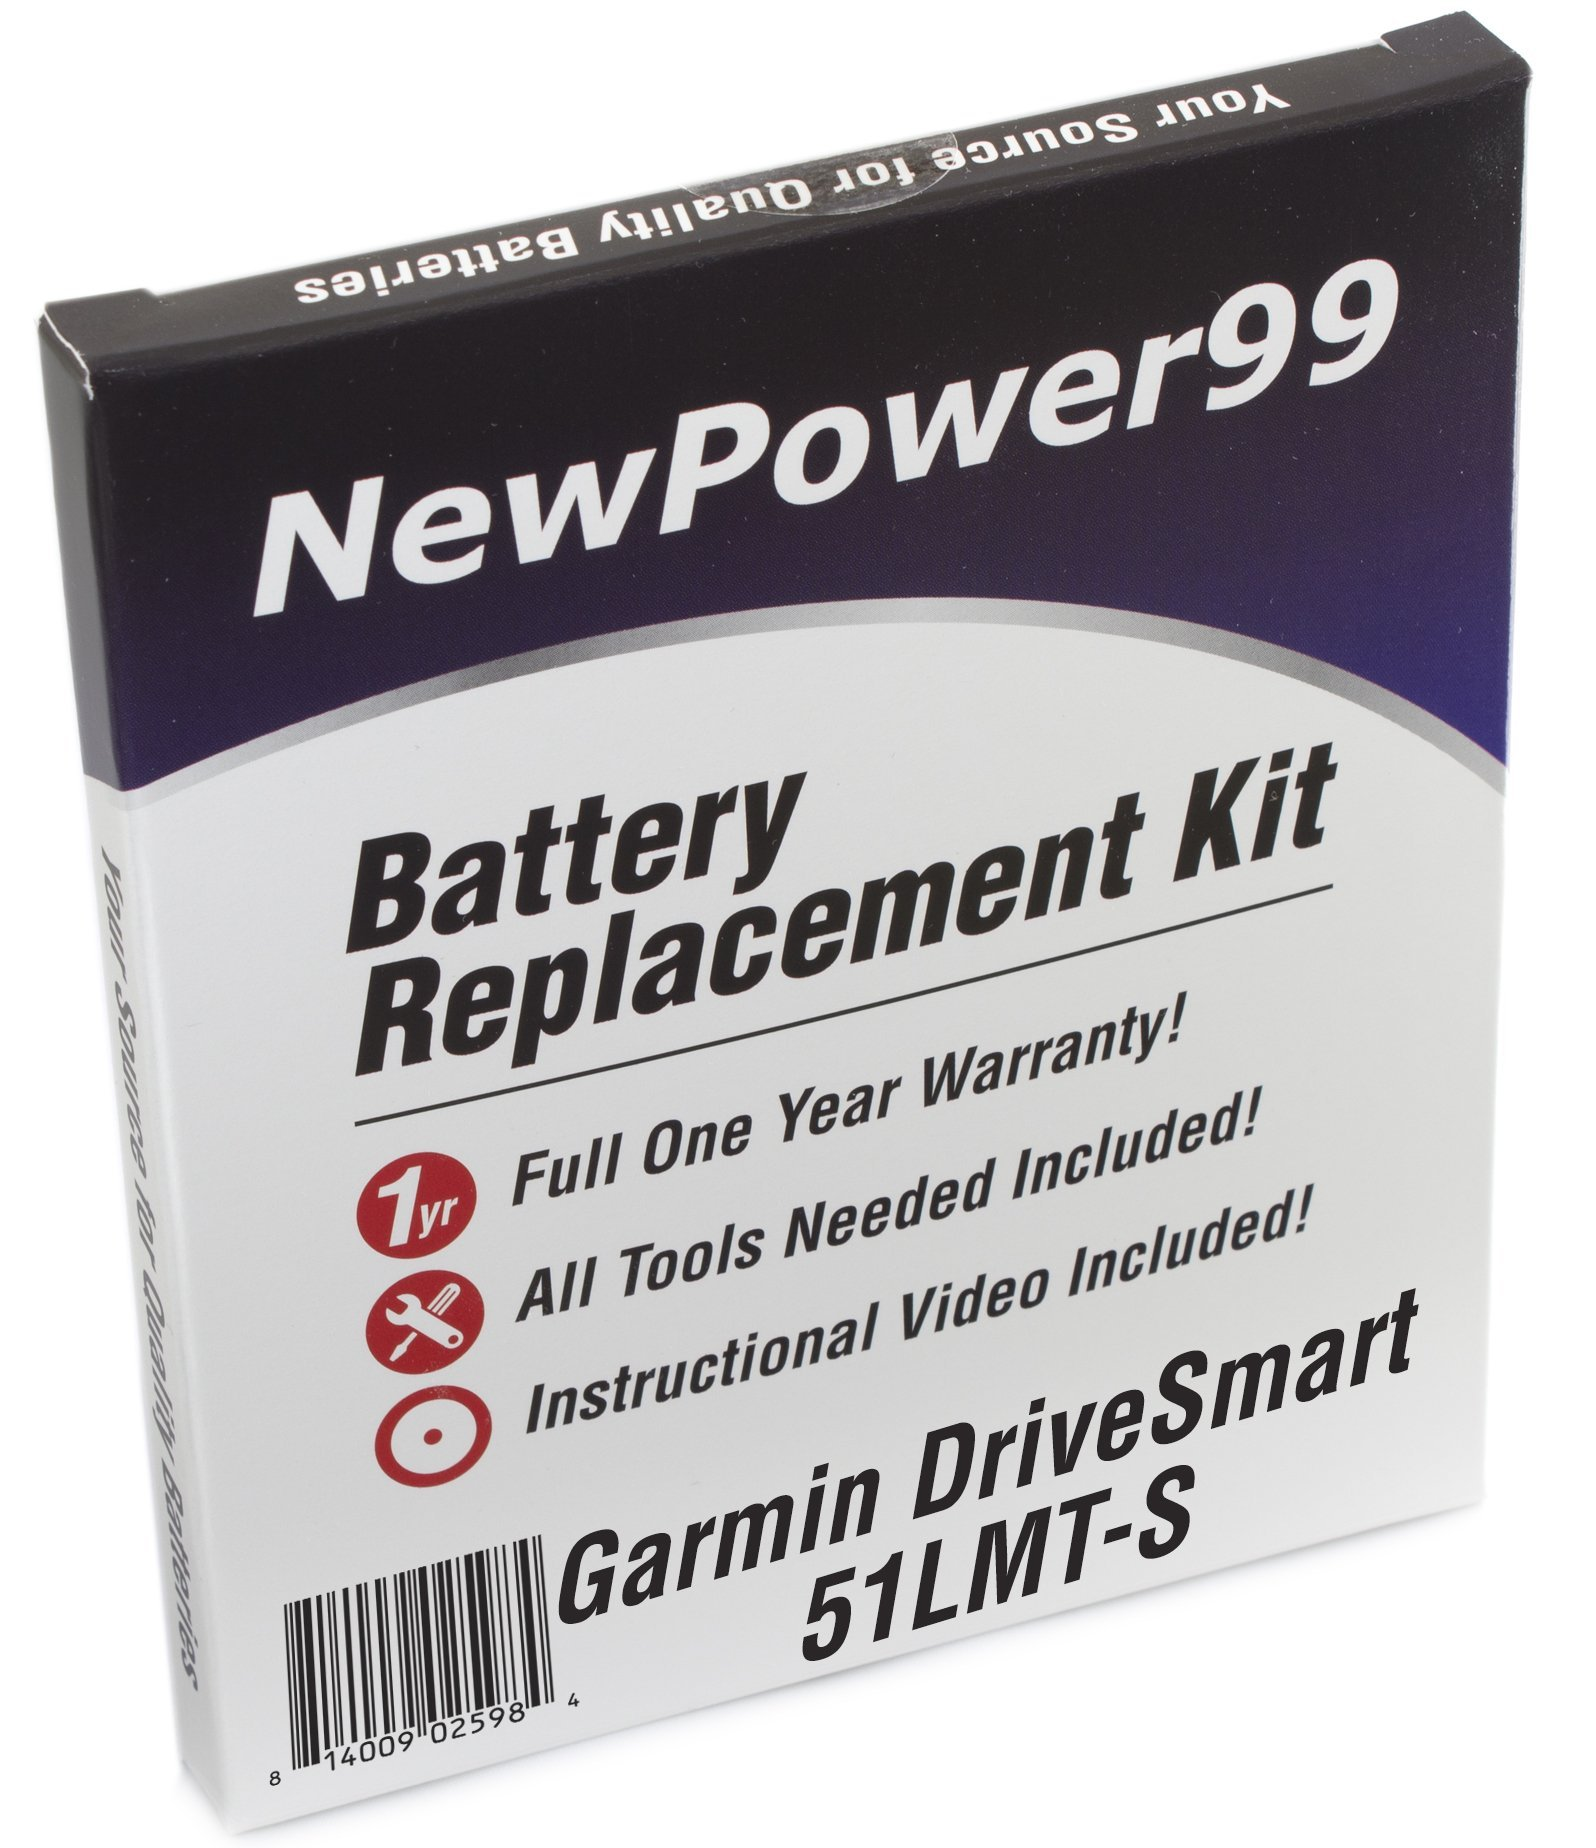 Battery Replacement Kit for Garmin DriveSmart 51LMT-S with Installation Video, Tools, and Extended Life Battery.